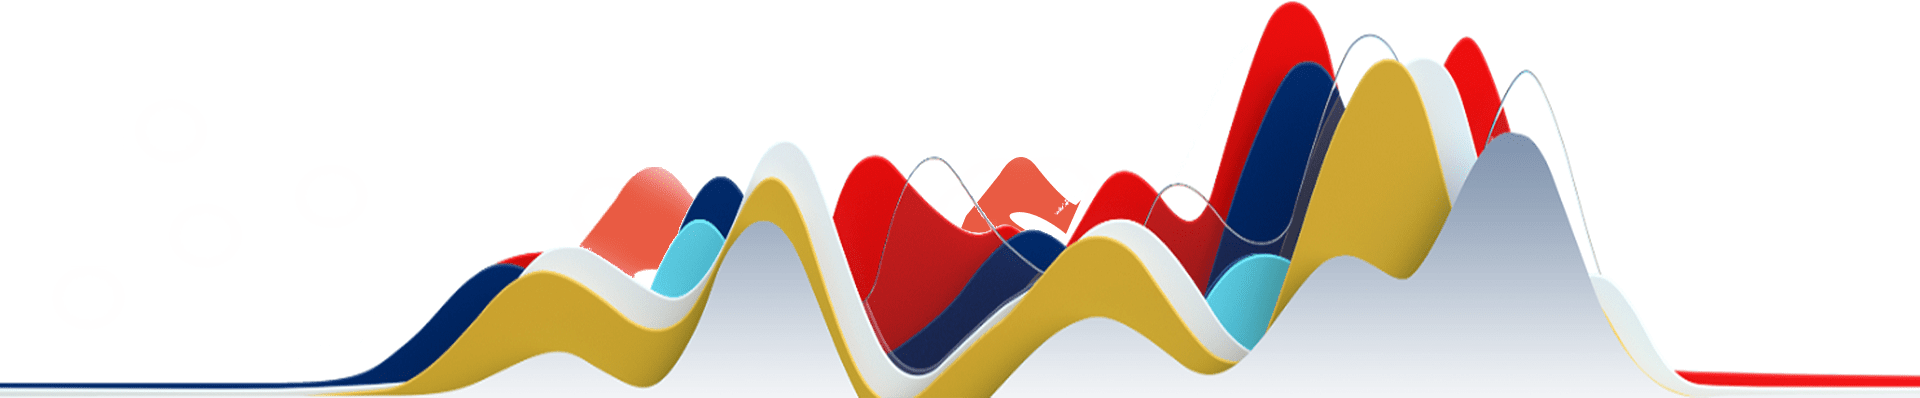 Colored 3d line graph with yellow, dark blue, red, aqua and white troughs and peaks of a graph